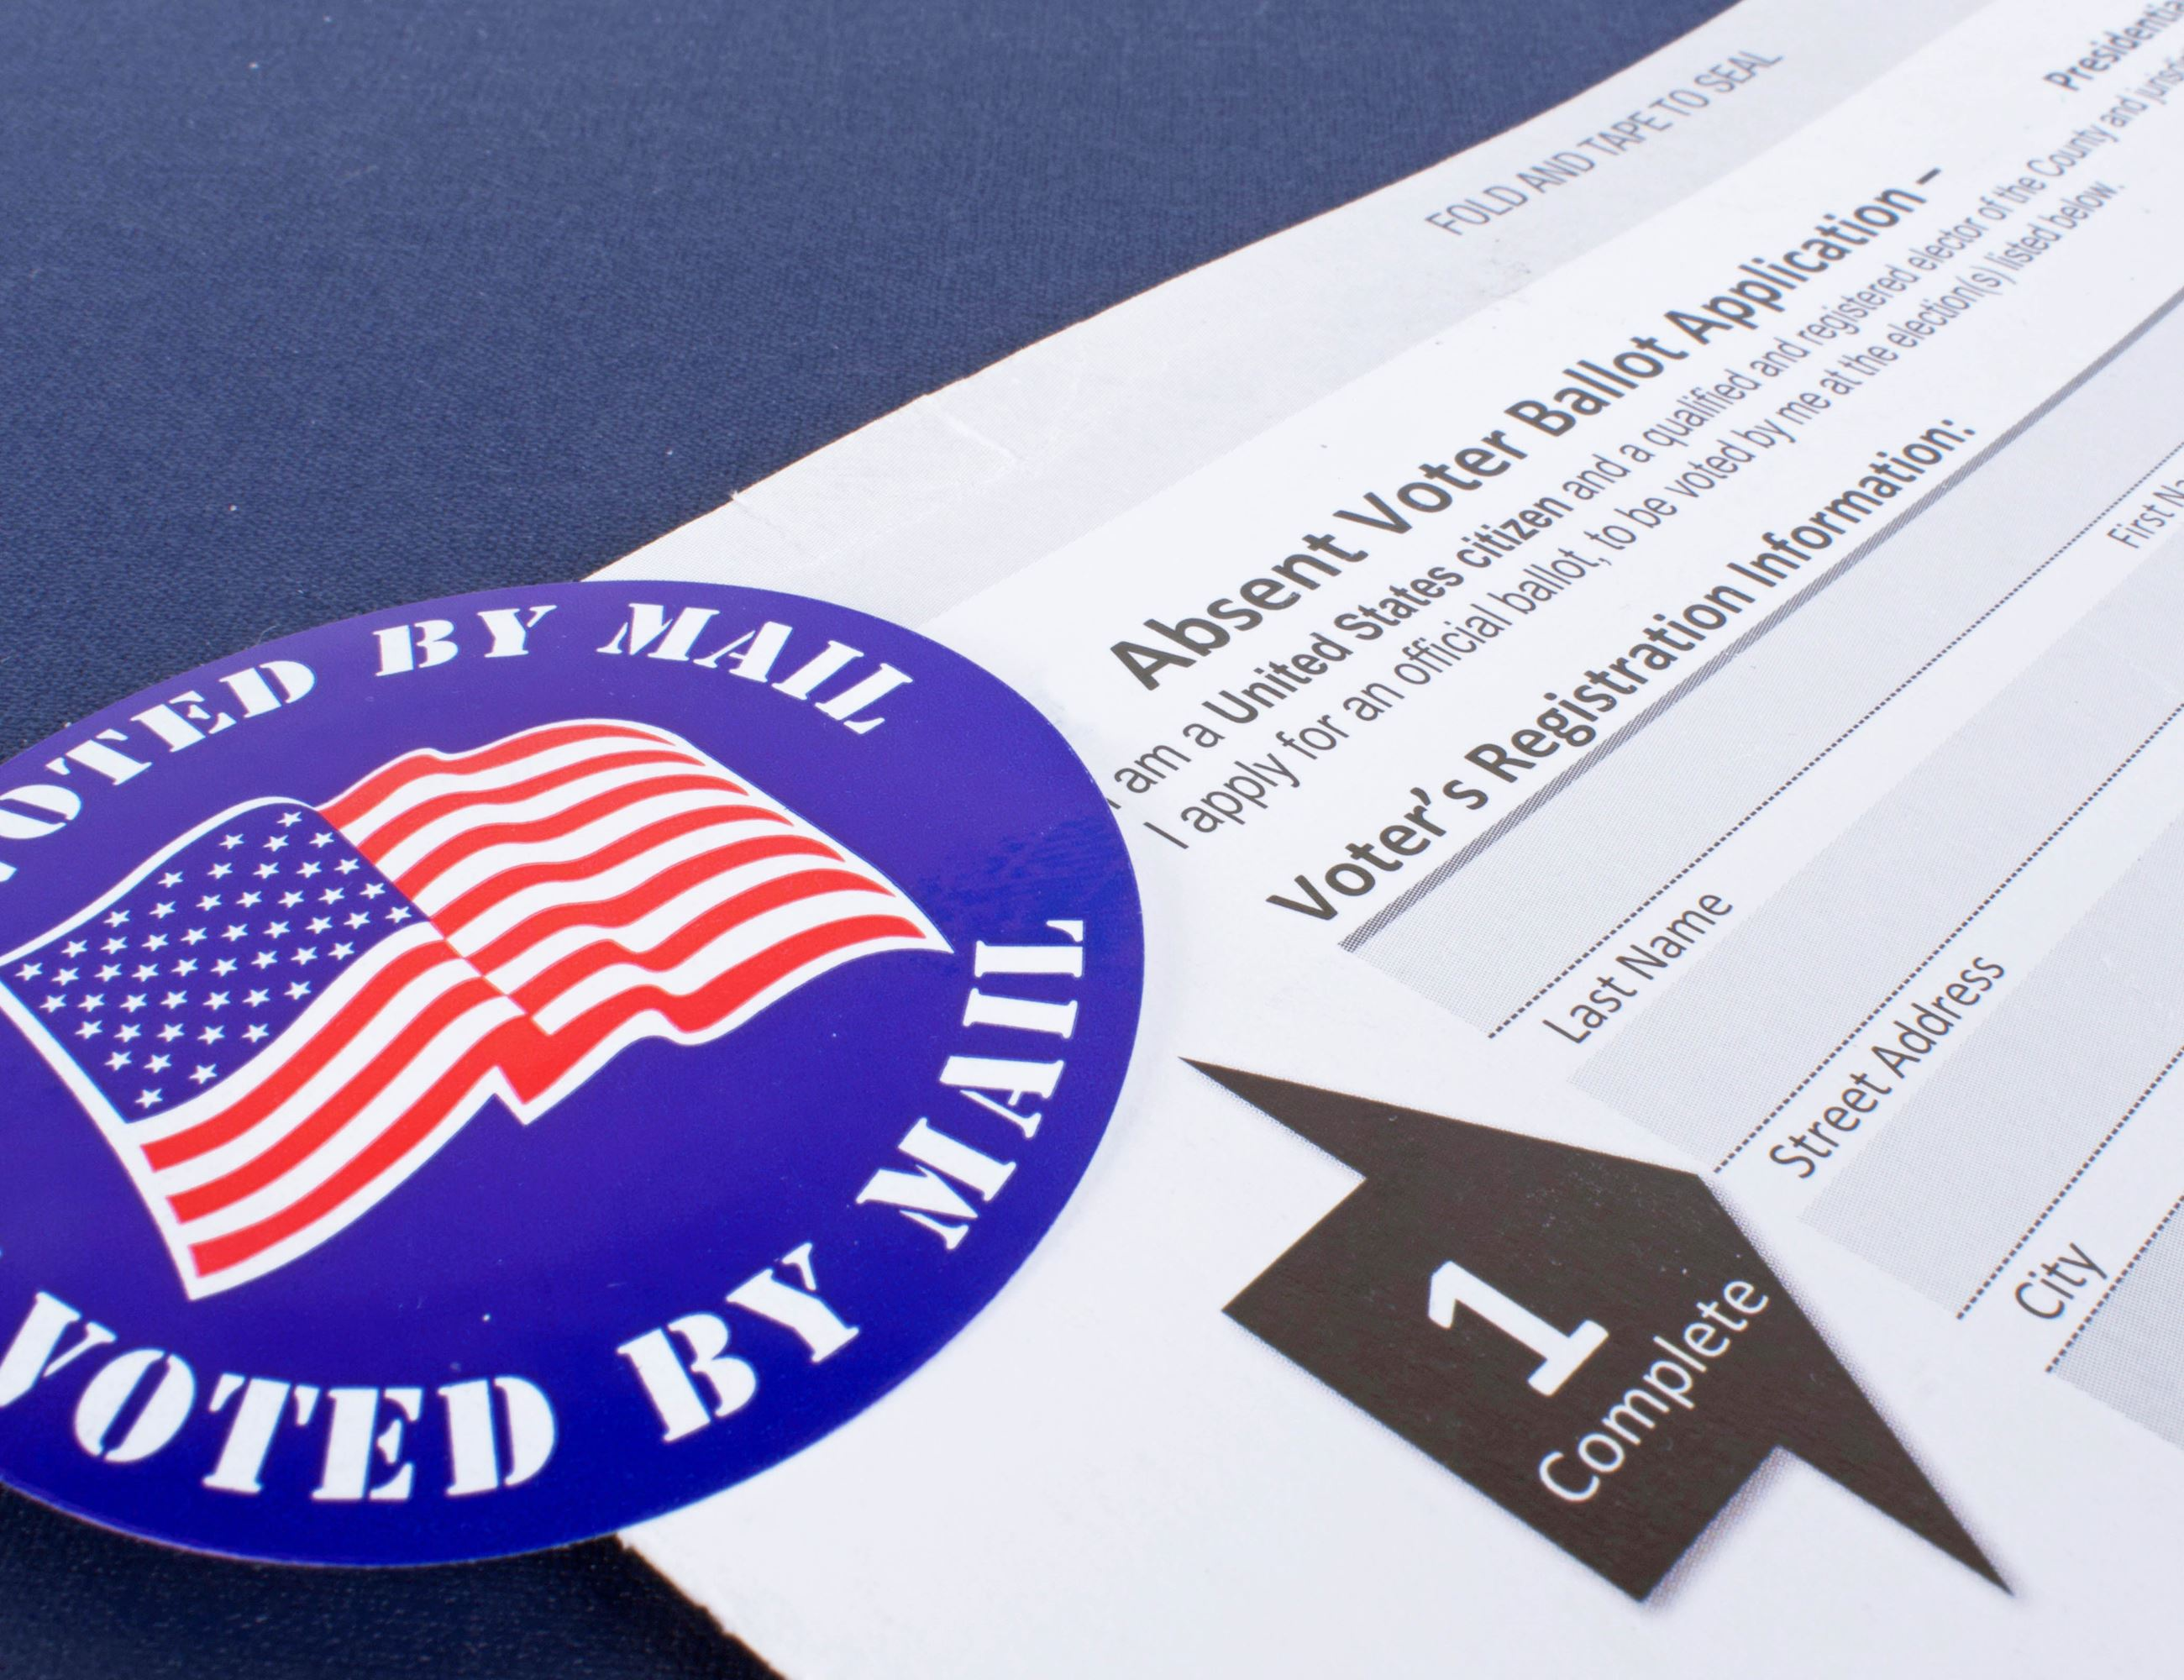 Vote by Mail application